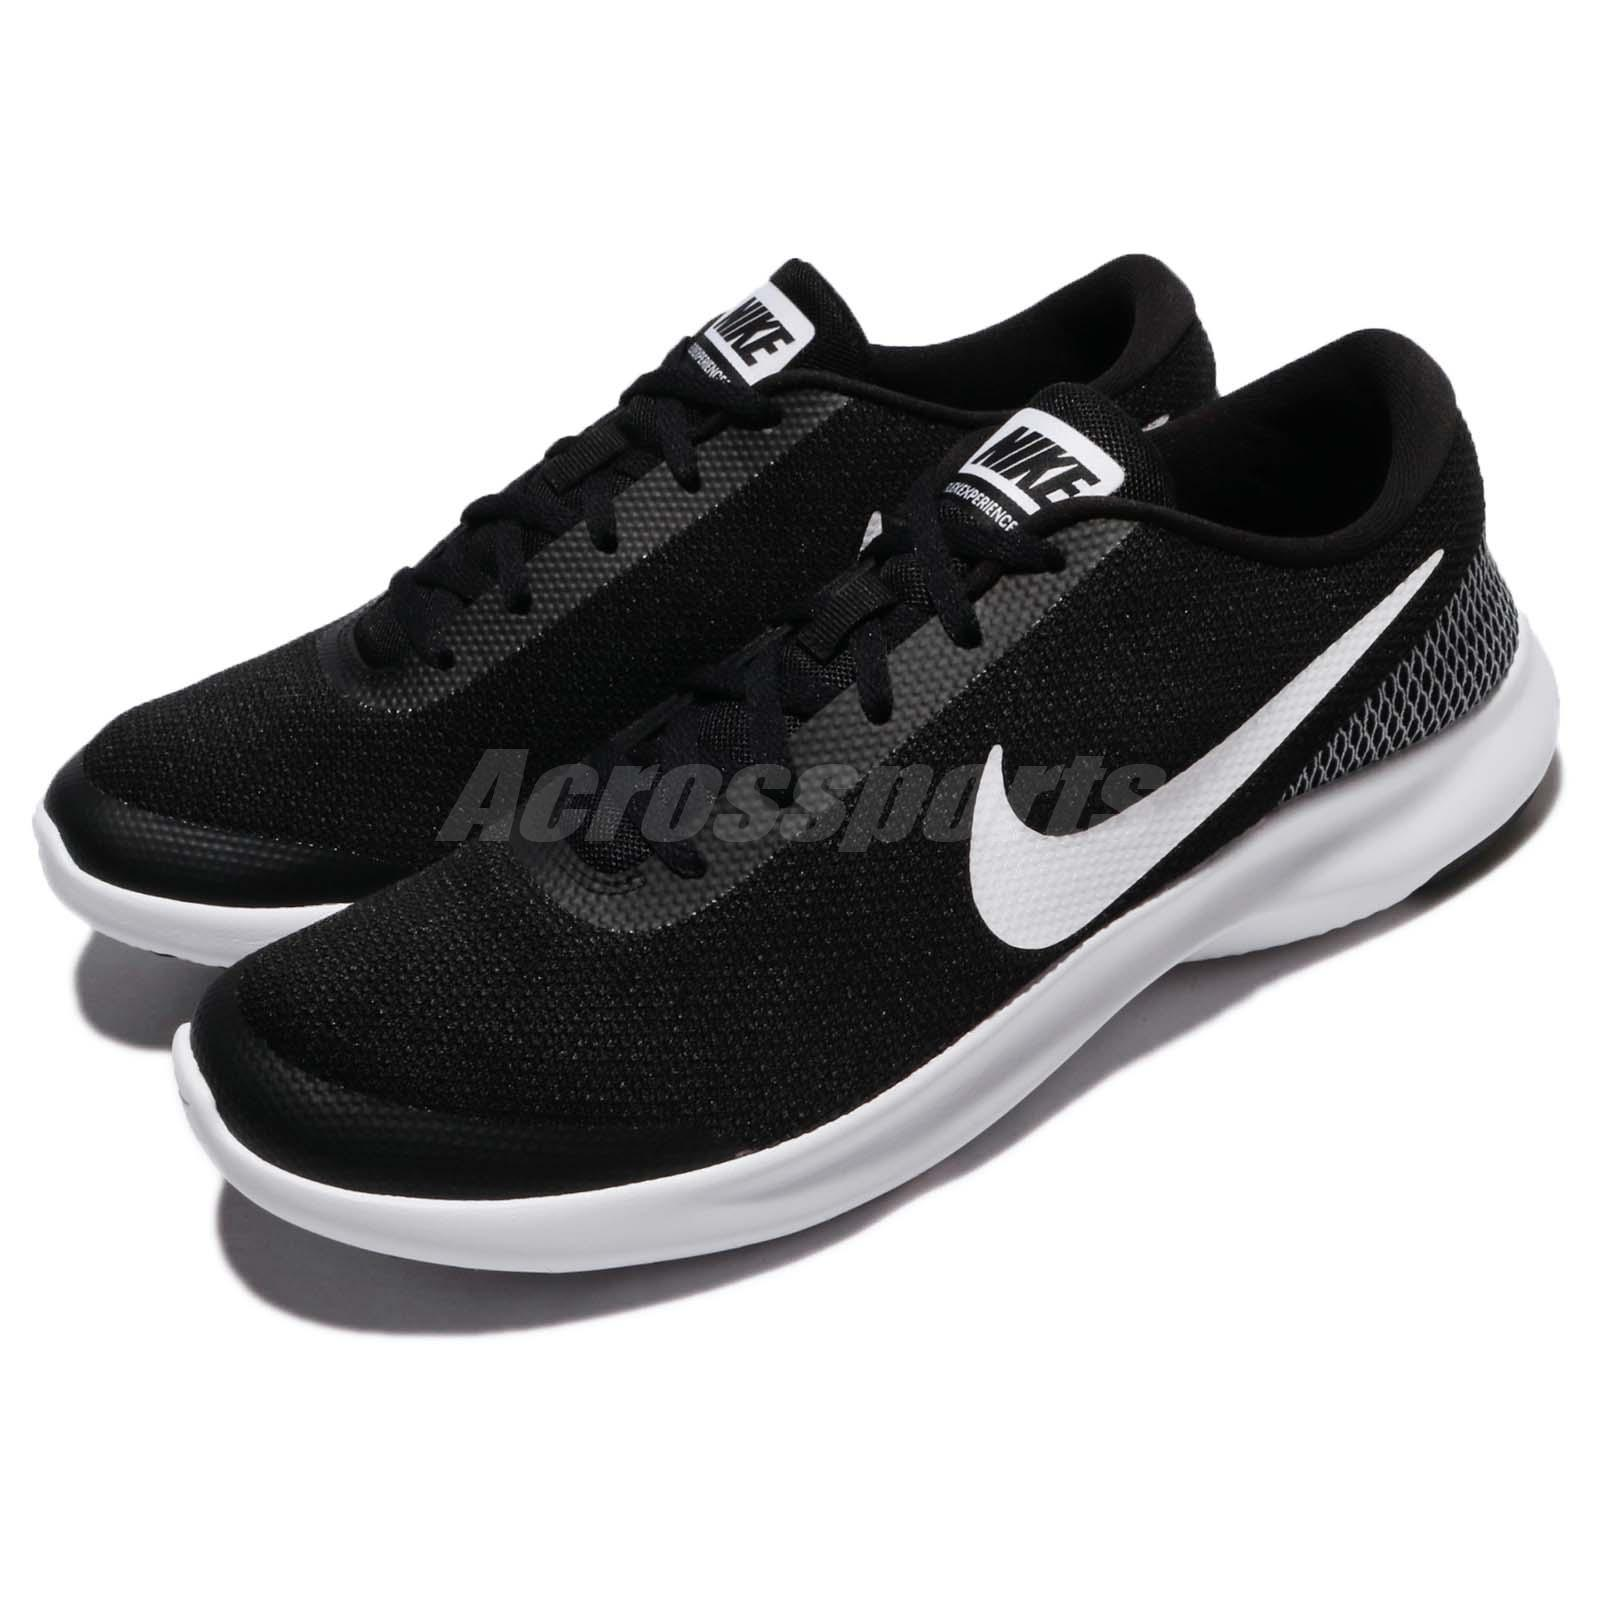 7e25fe16fc6 Details about Nike Flex Experience RN 7 VII Black White Men Running Shoes  Sneakers 908985-001